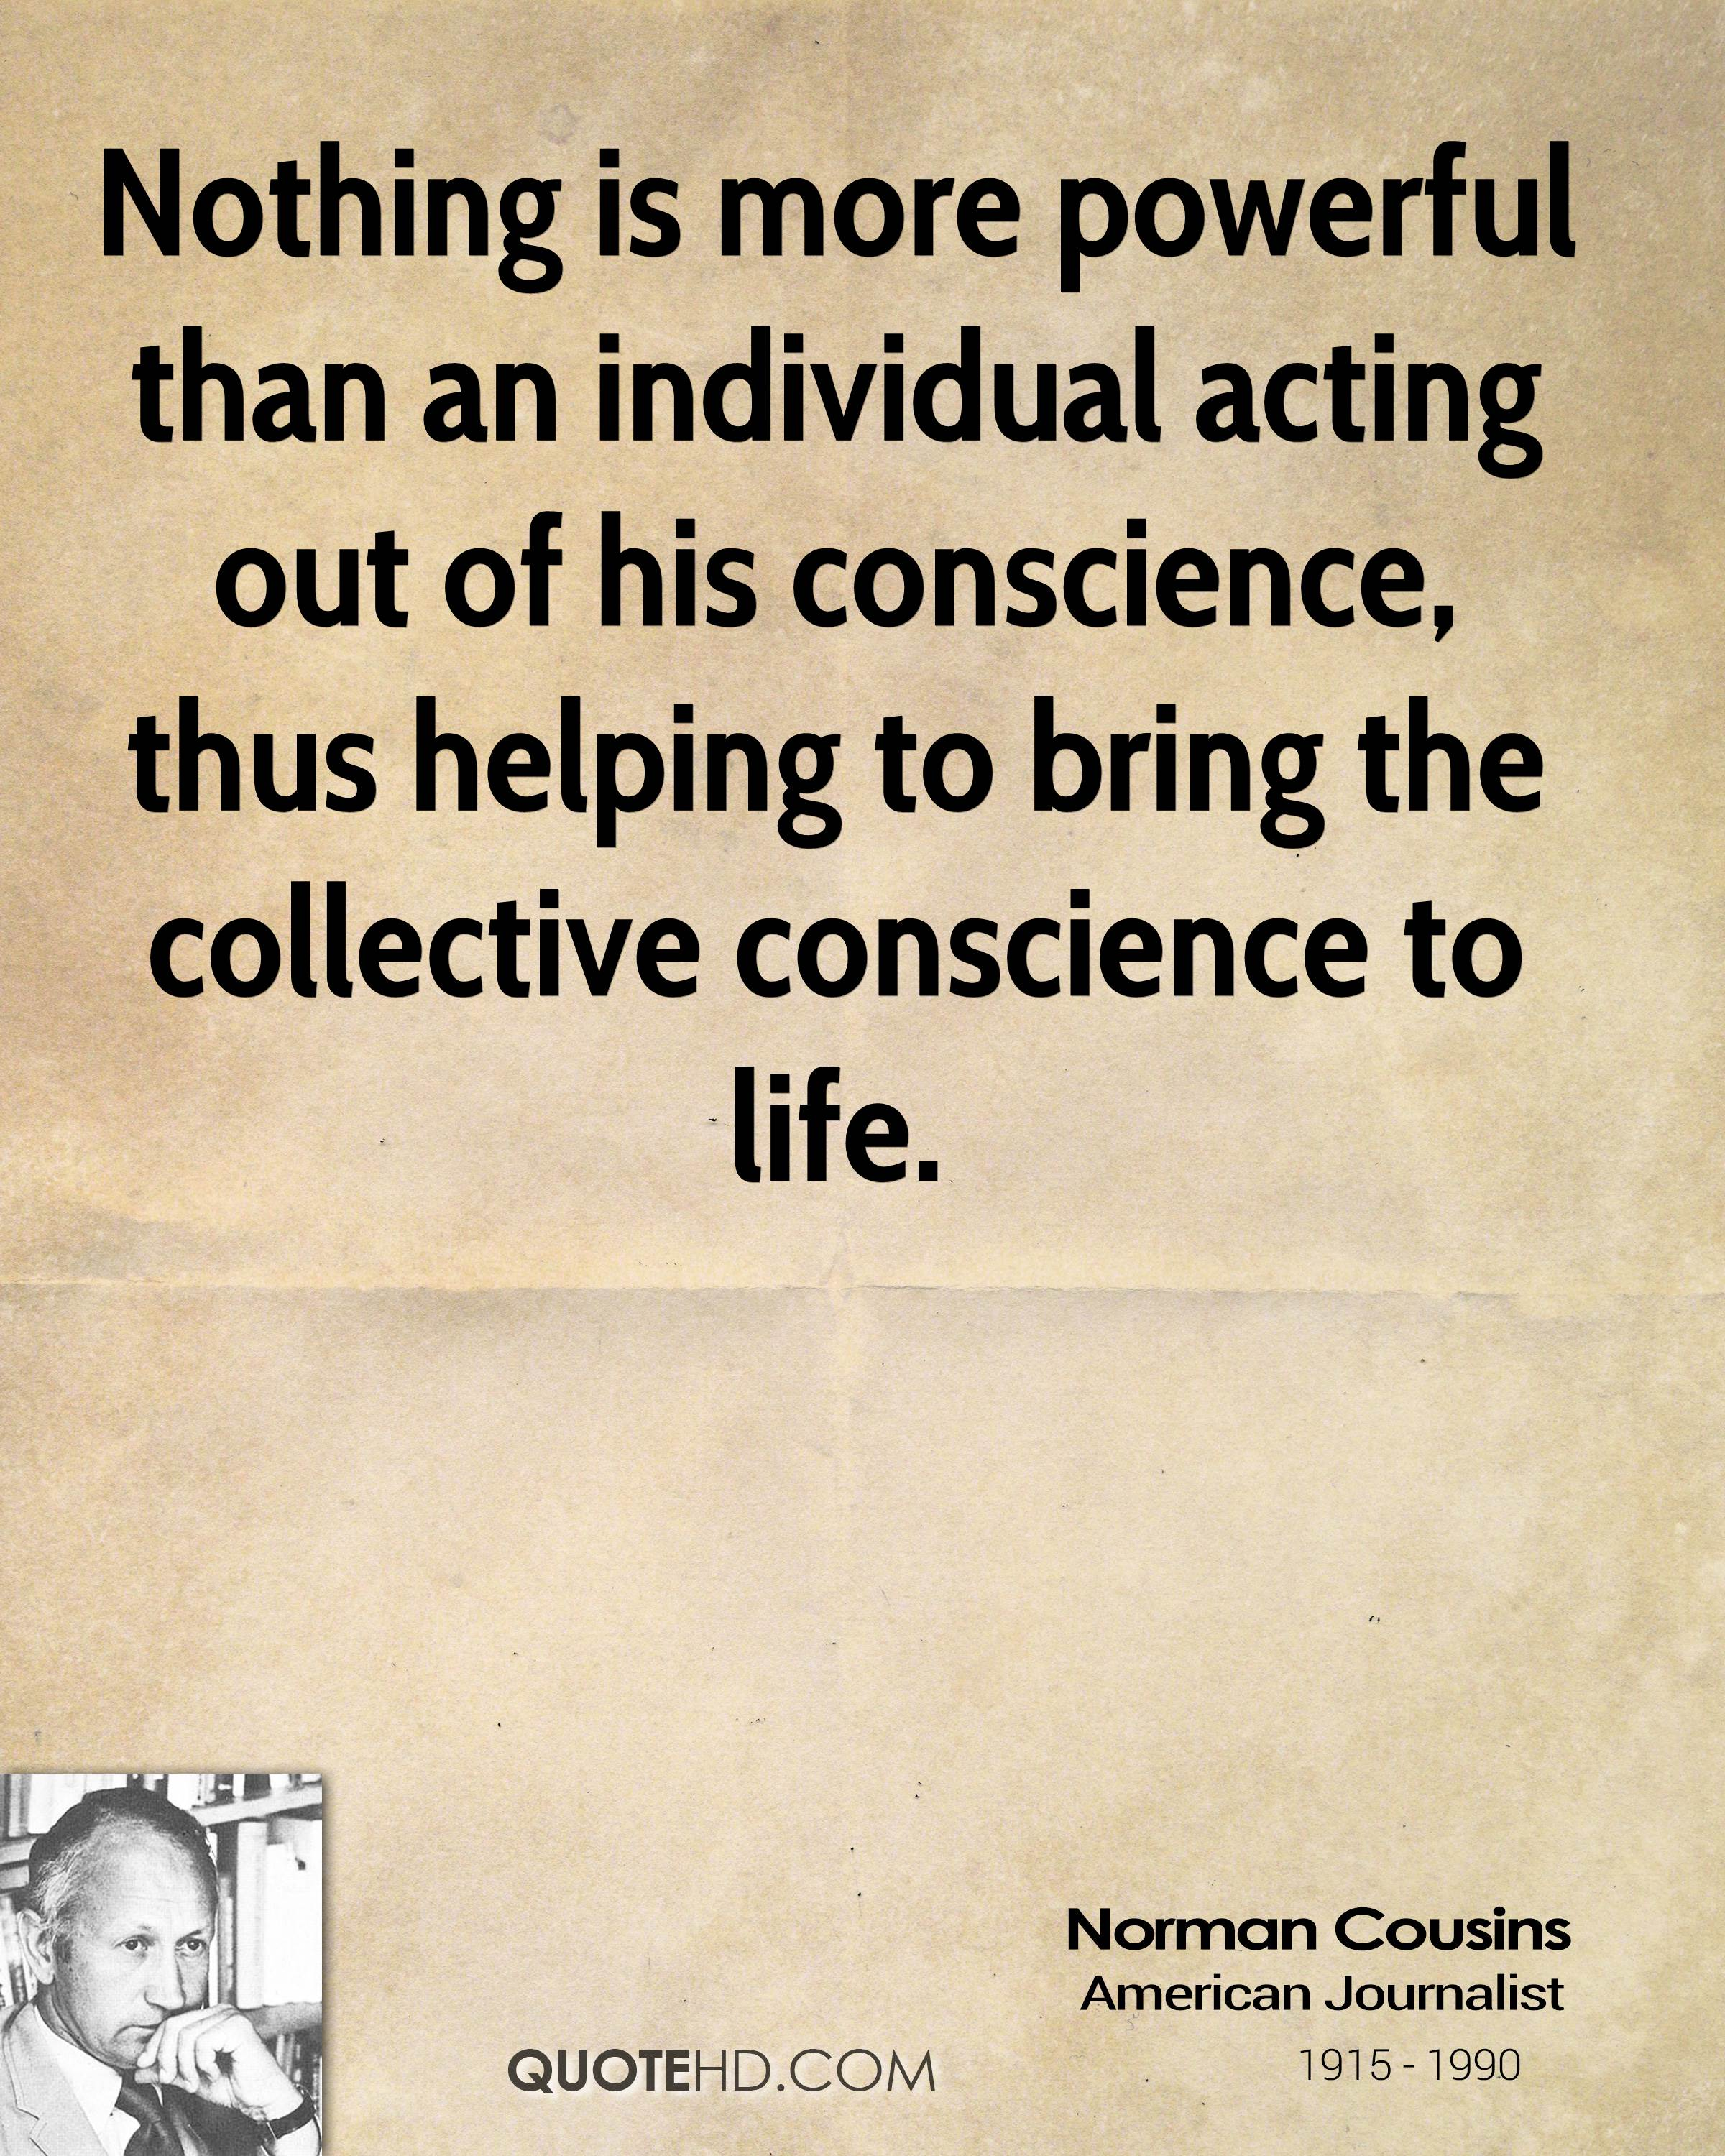 Nothing is more powerful than an individual acting out of his conscience, thus helping to bring the collective conscience to life.